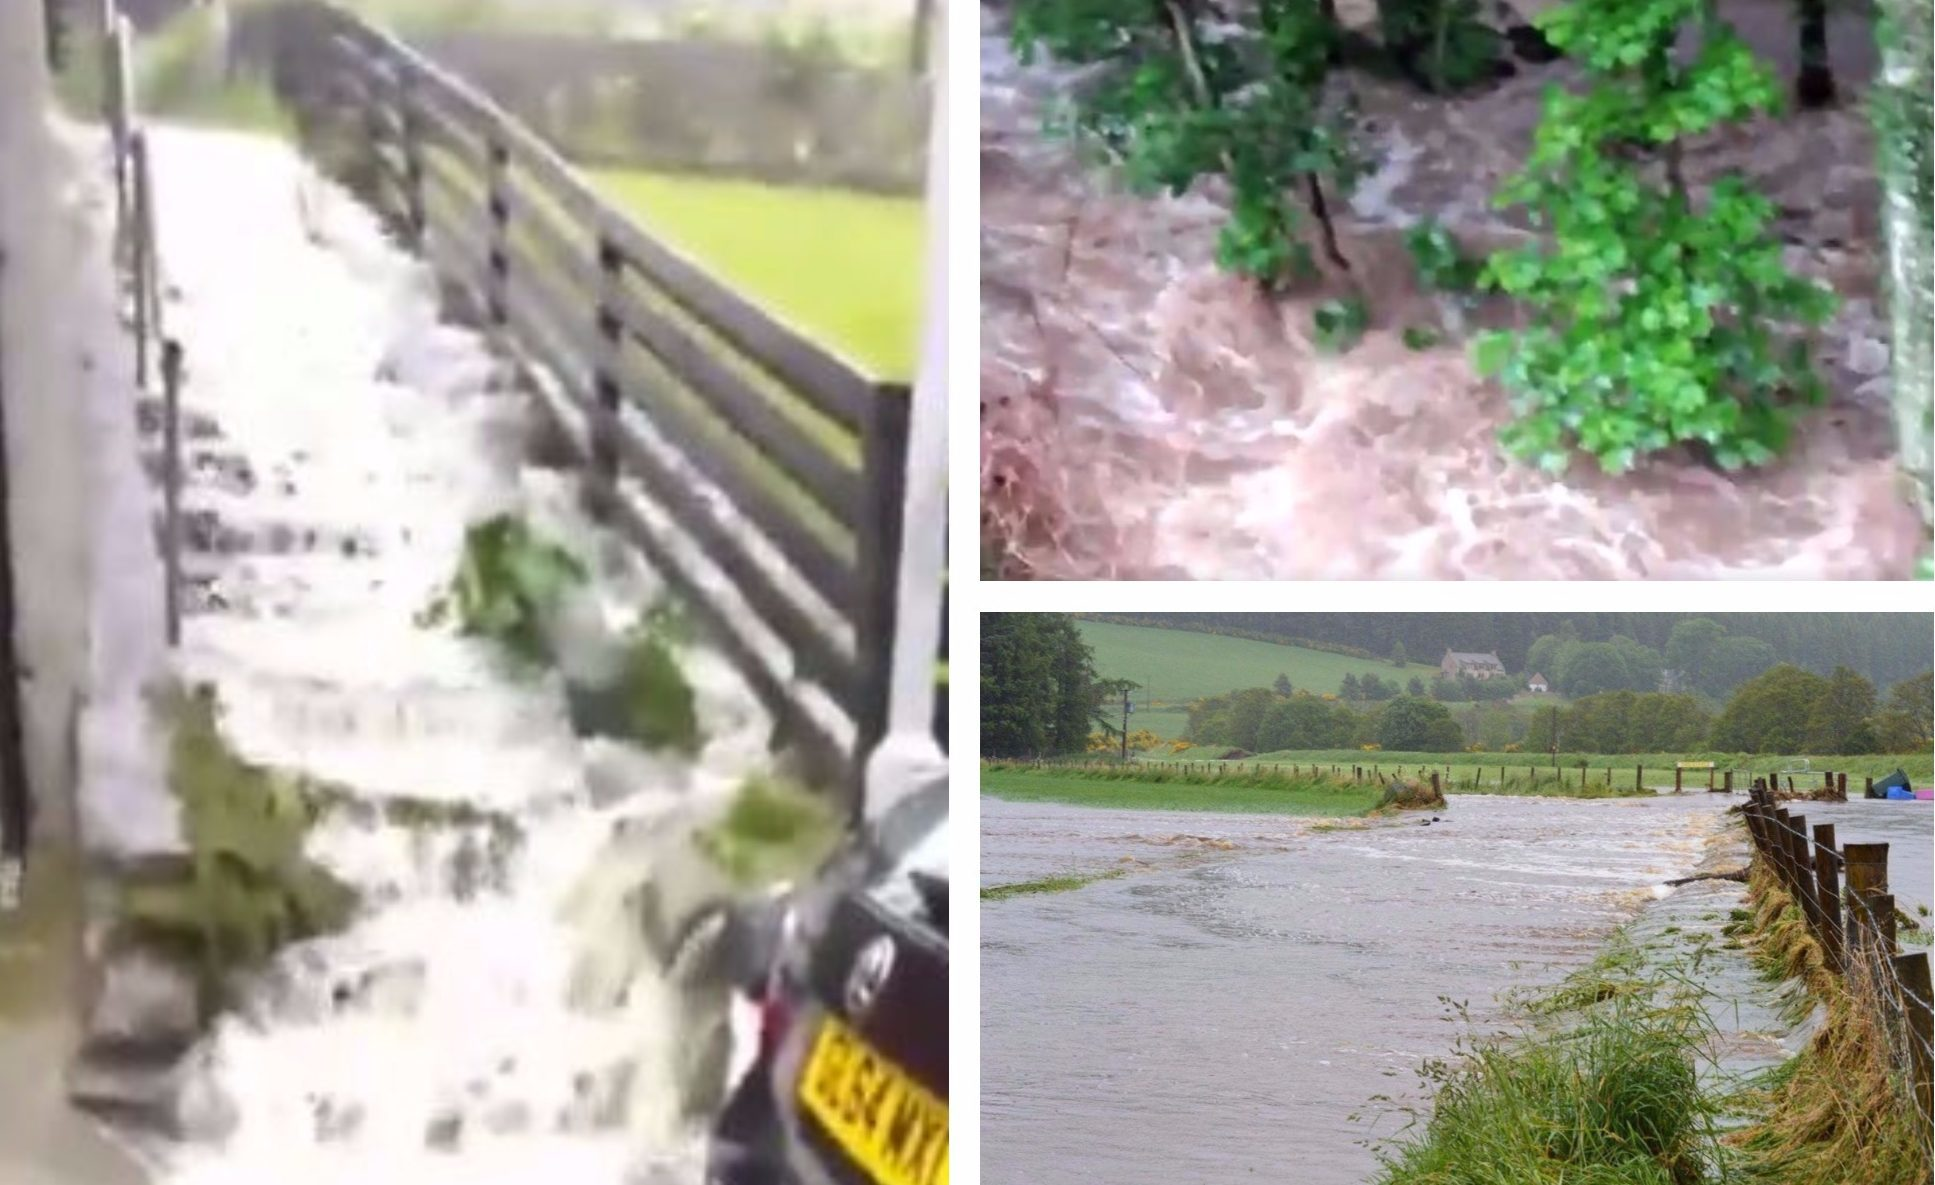 Flooding has hit parts of Scotland. Credit: Ricky Boyd, Kirsty Boyle and Caroline McFarlane on Twitter.